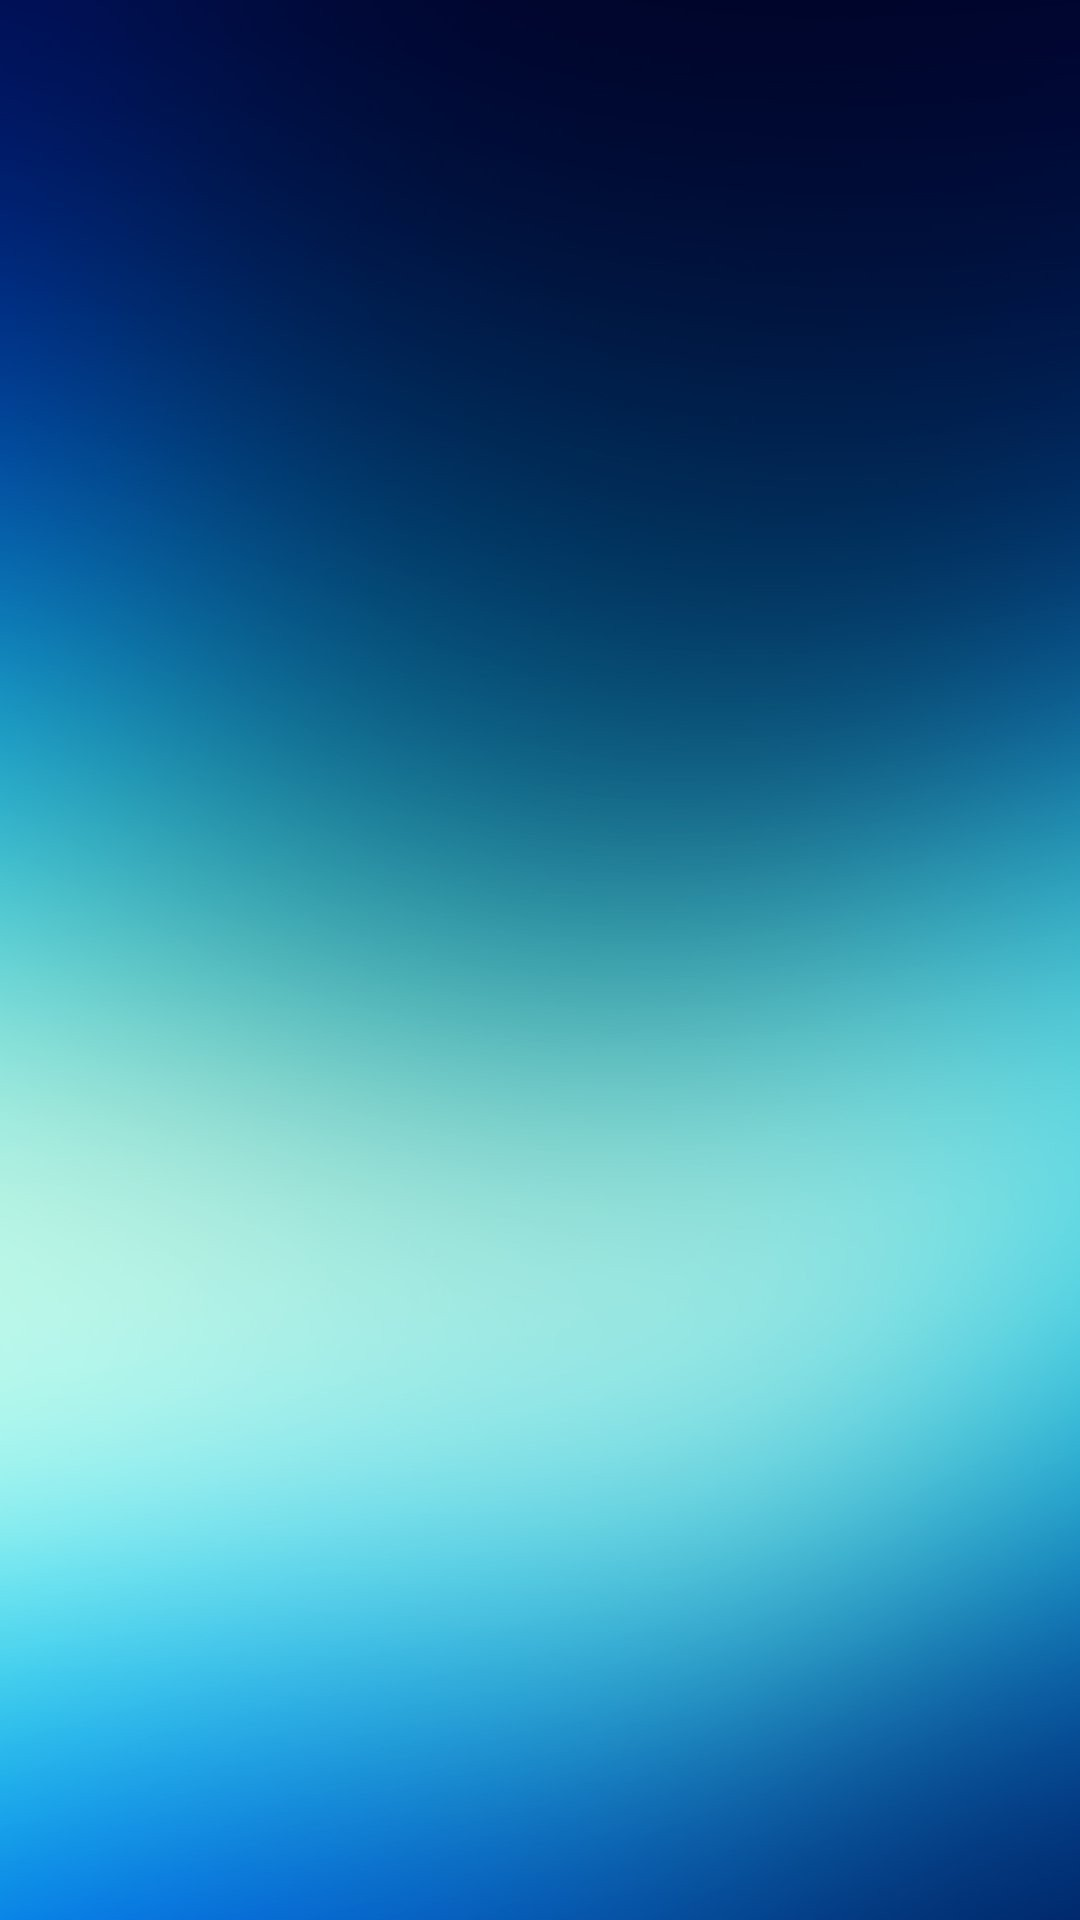 Blue Blur iPhone 6 Plus Wallpaper 26343 – Abstract iPhone 6 Plus Wallpapers